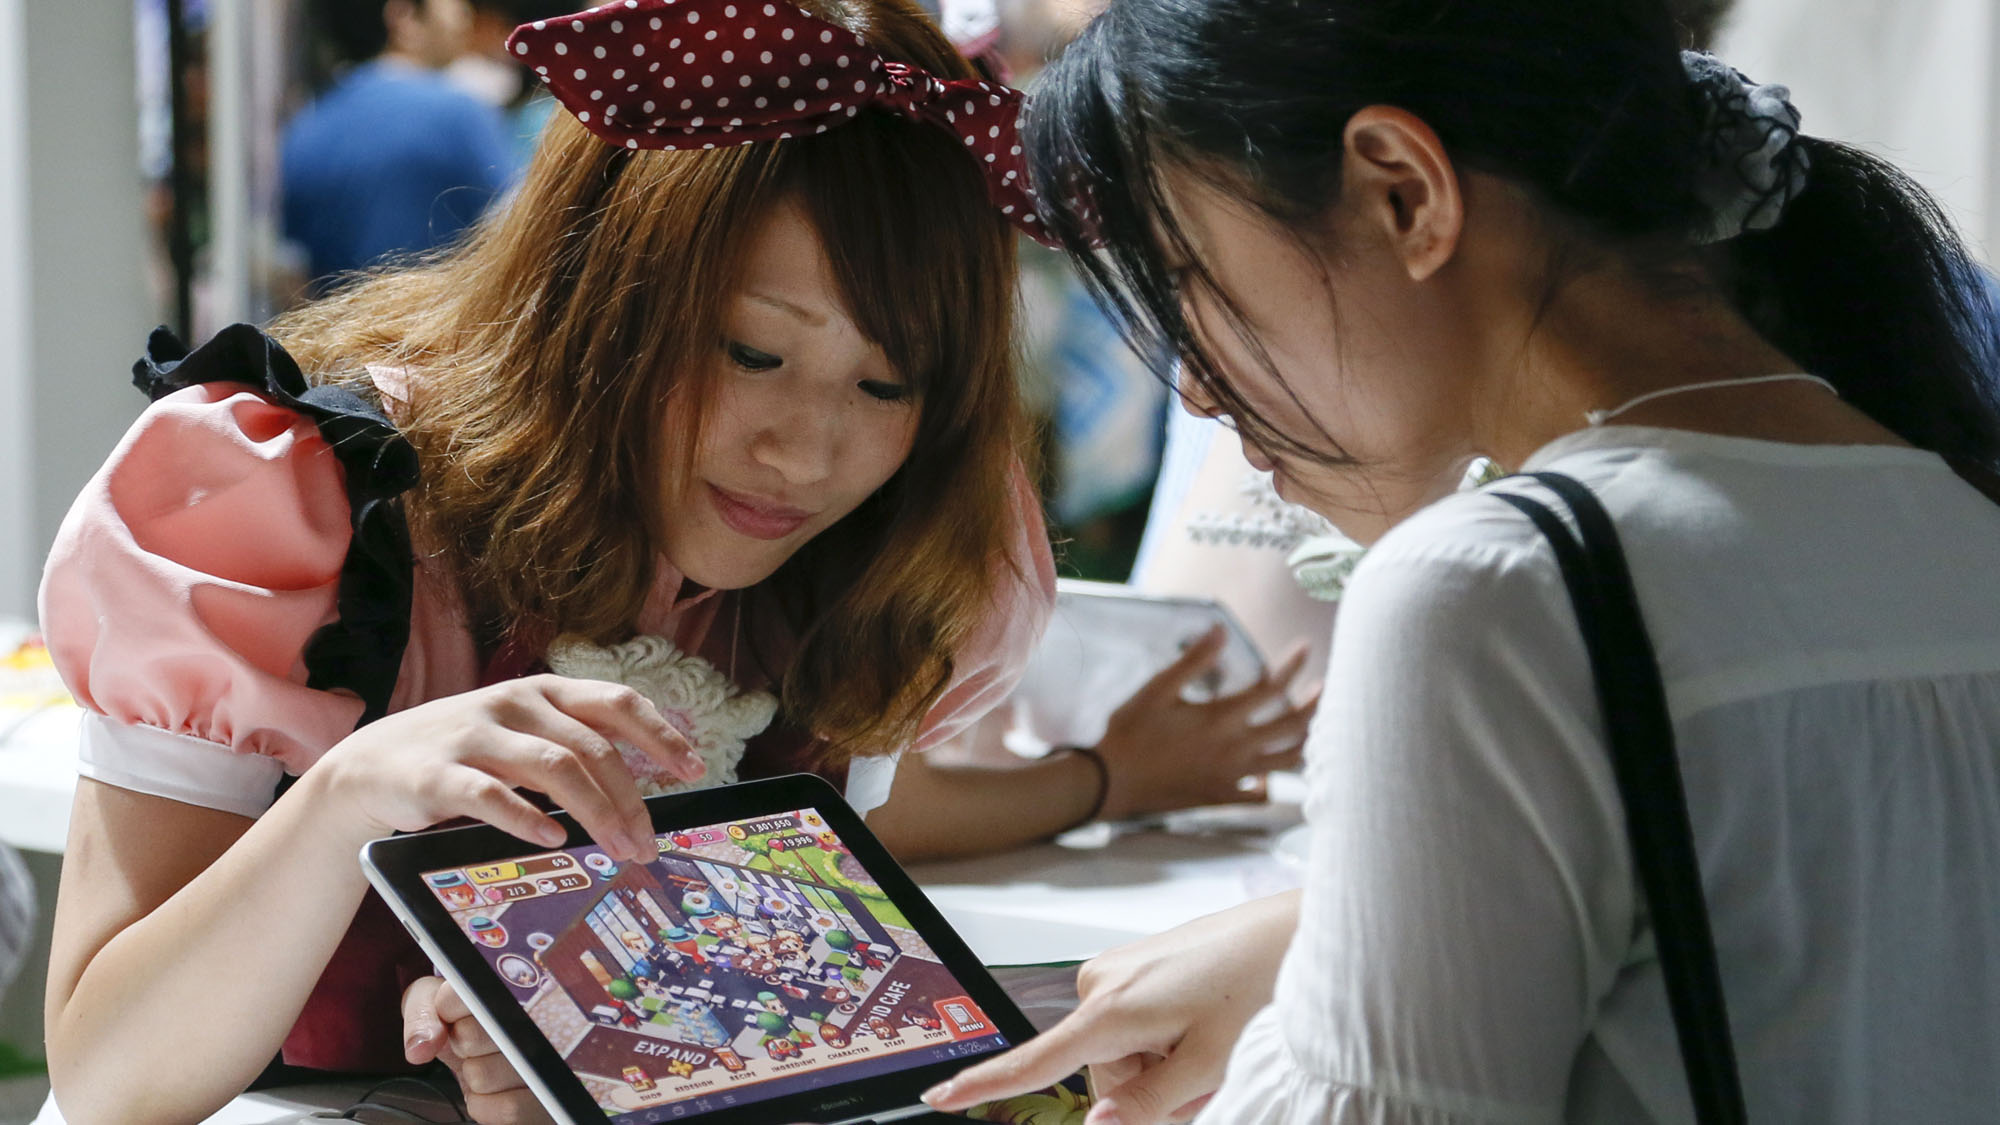 A visitor tries to play a game on a tablet at the booth of WeMade Entertainment, a South Korean company developing and running online games, during the Tokyo Game Show 2012 at Makuhari Messe in Chiba, east of Tokyo, Japan, 21 September 2012. The game show takes place from 20 to 23 September.